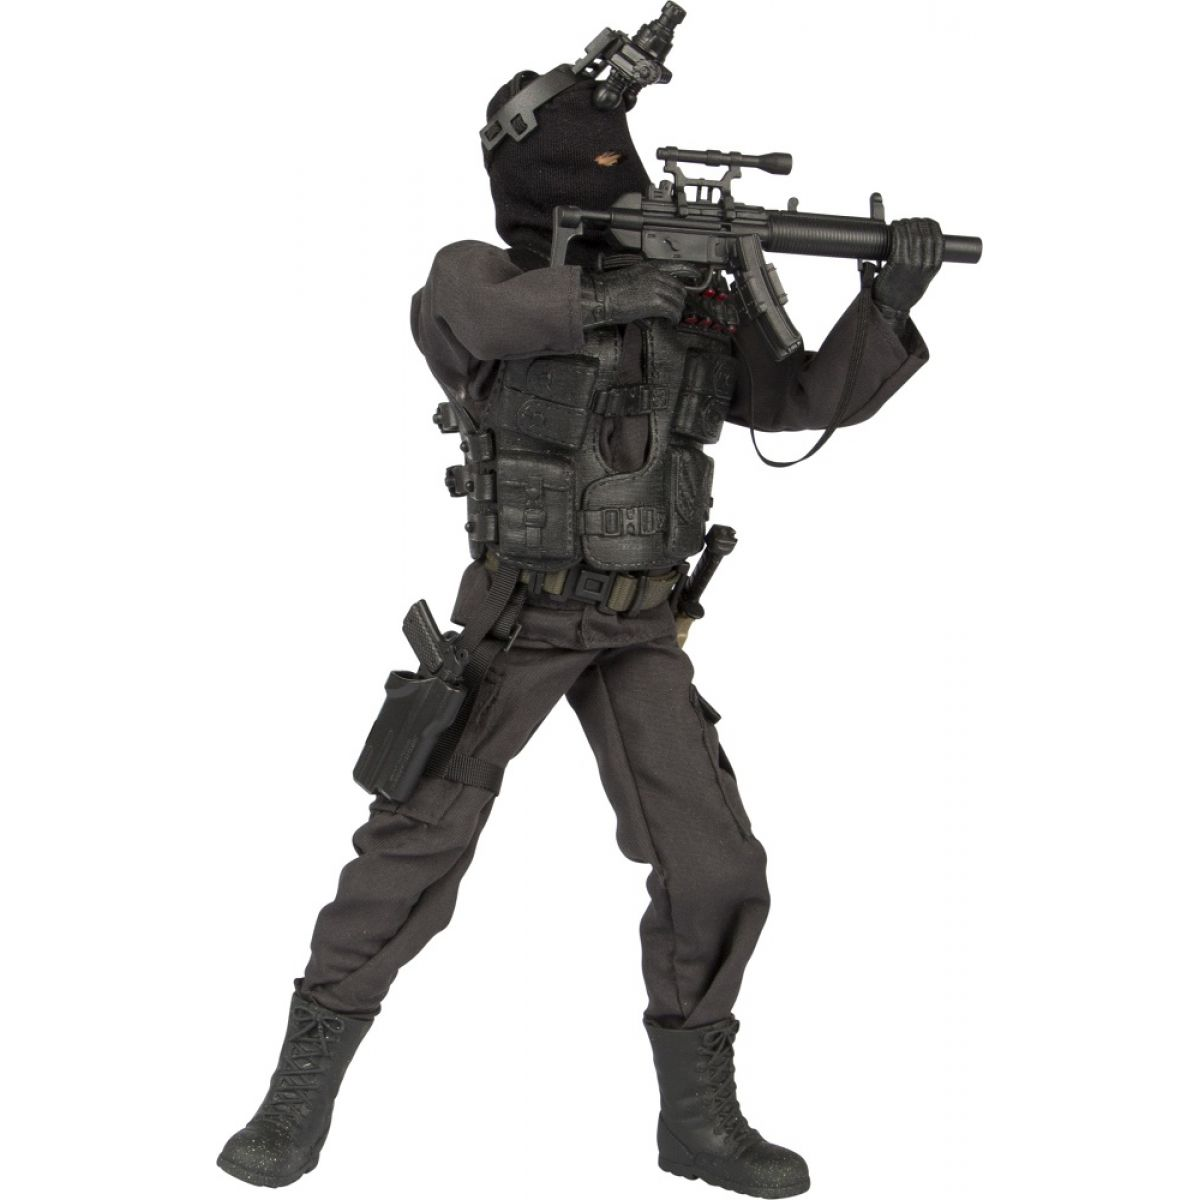 World Peacekeepers Voják figurka 30,5cm - Navy Seal Night Operation